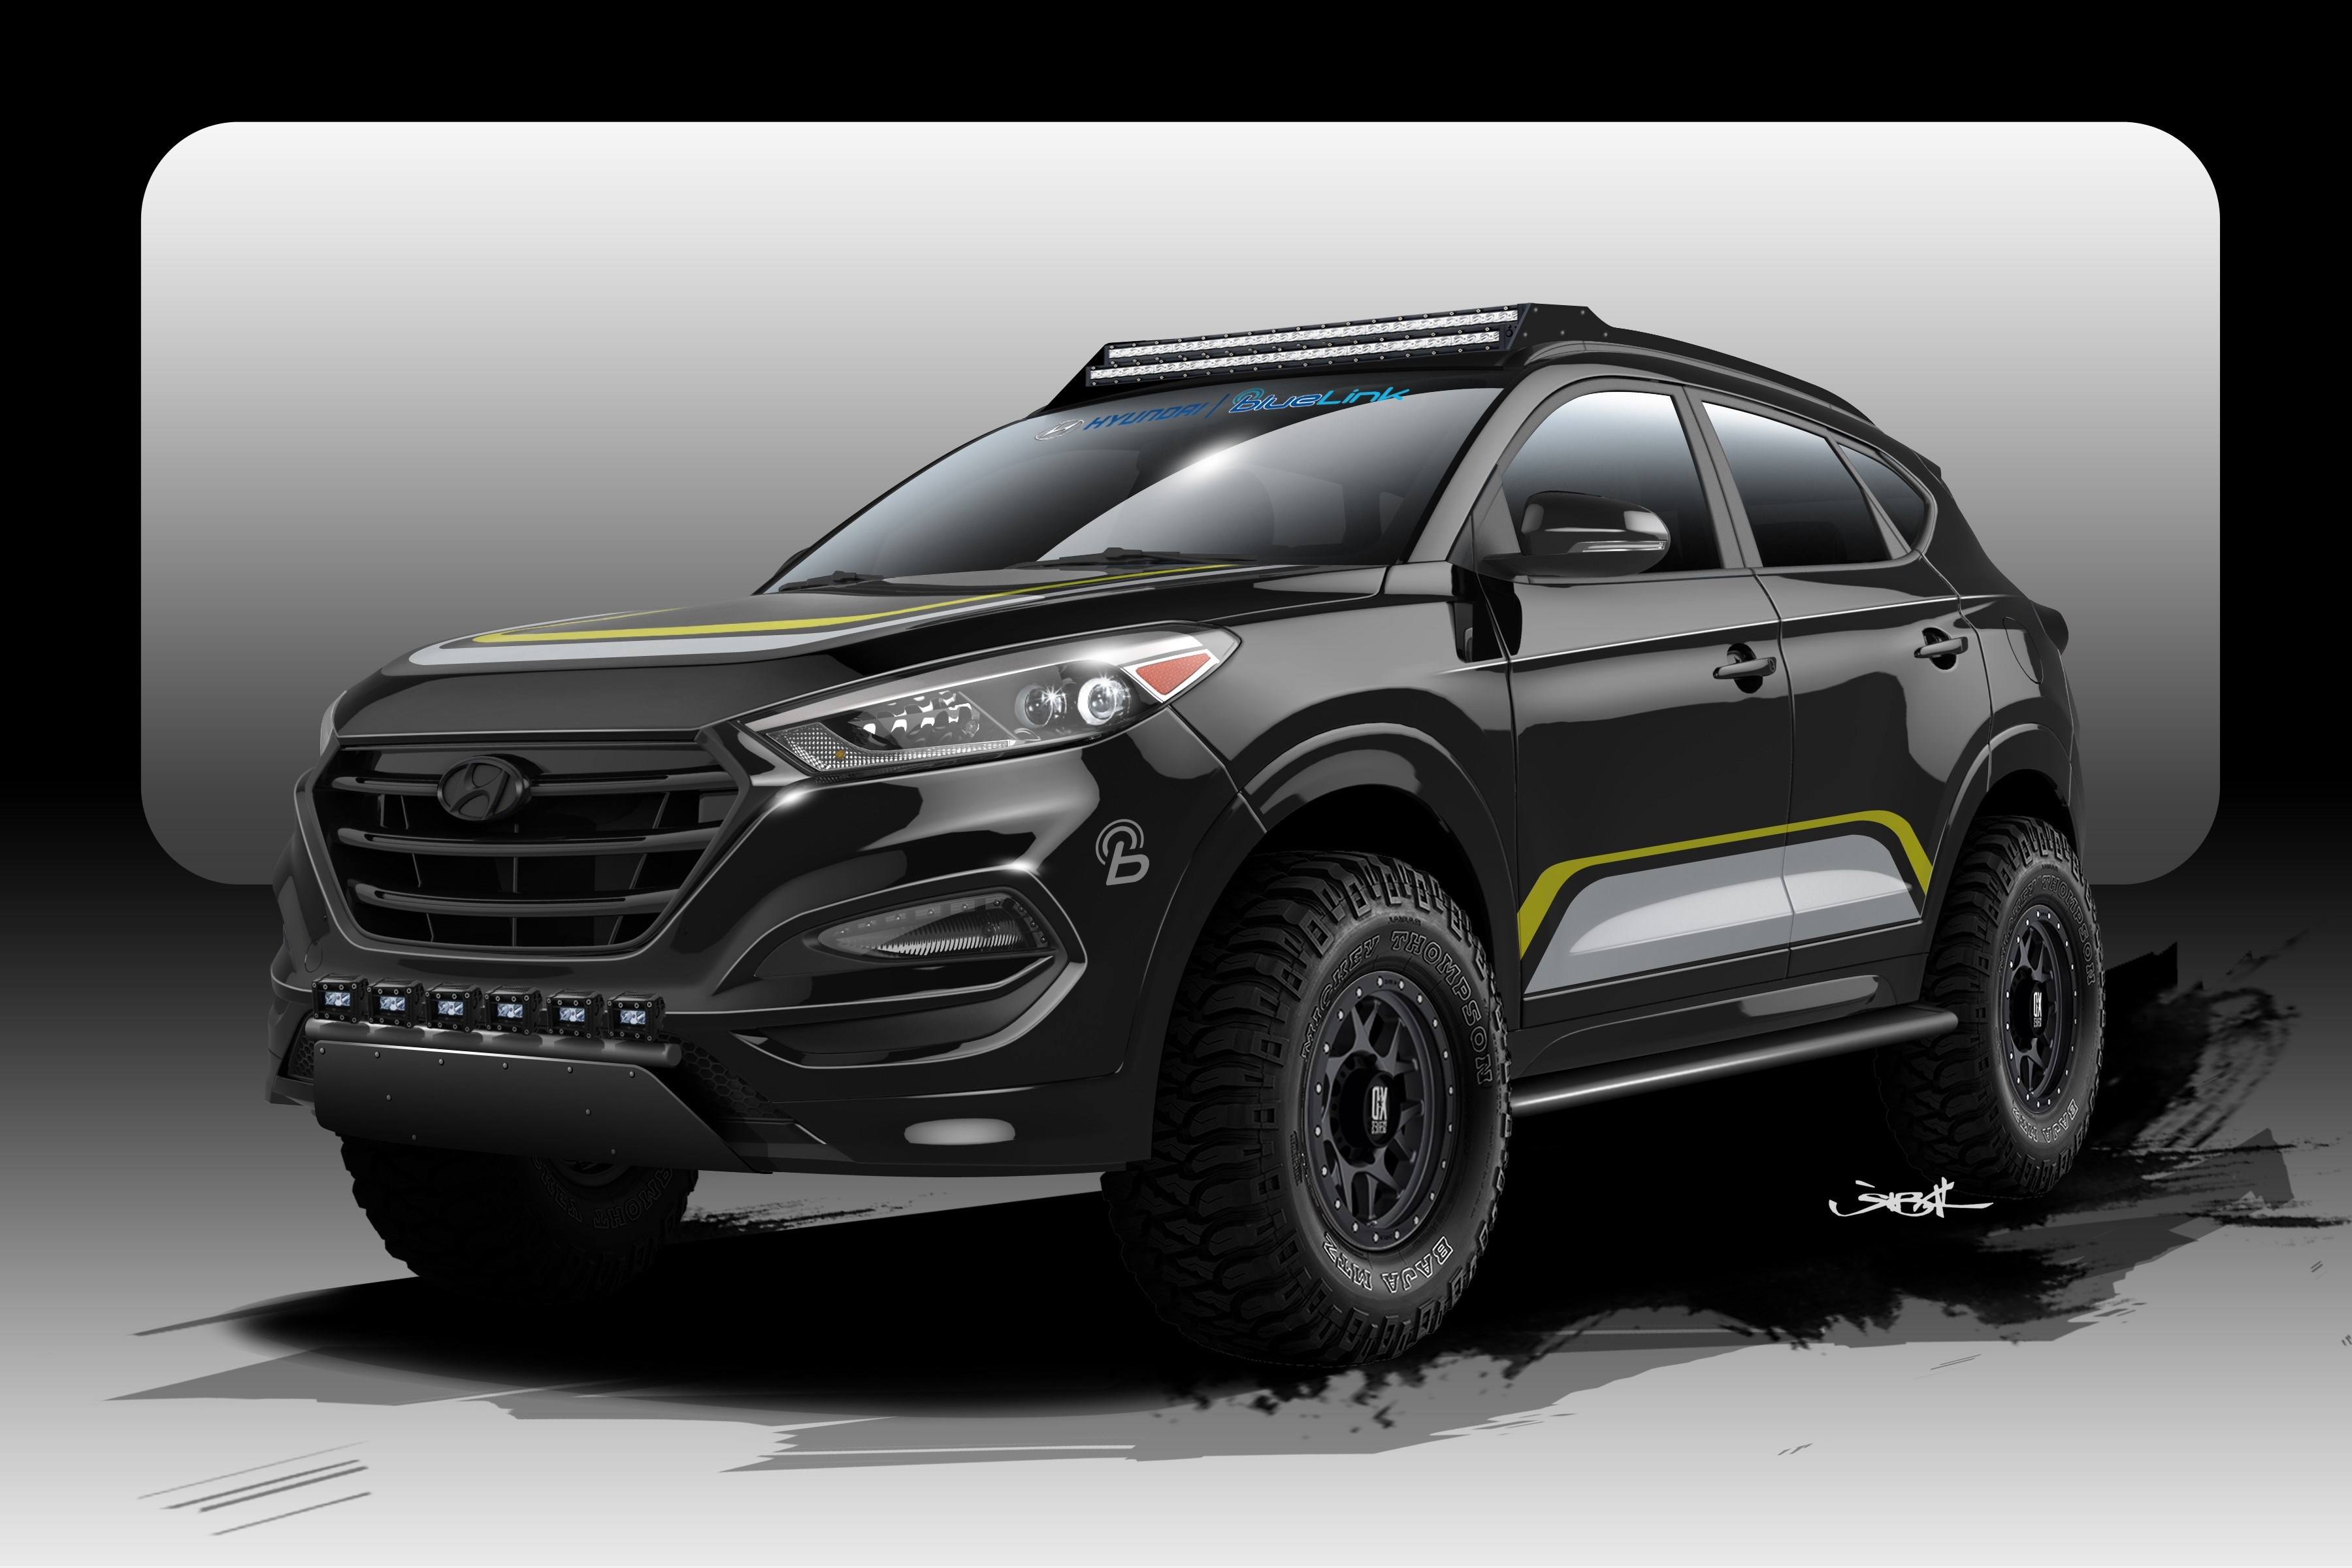 degree crossover trendy in with pricing photos and loaded guide colors hyundai tucson spinners is under